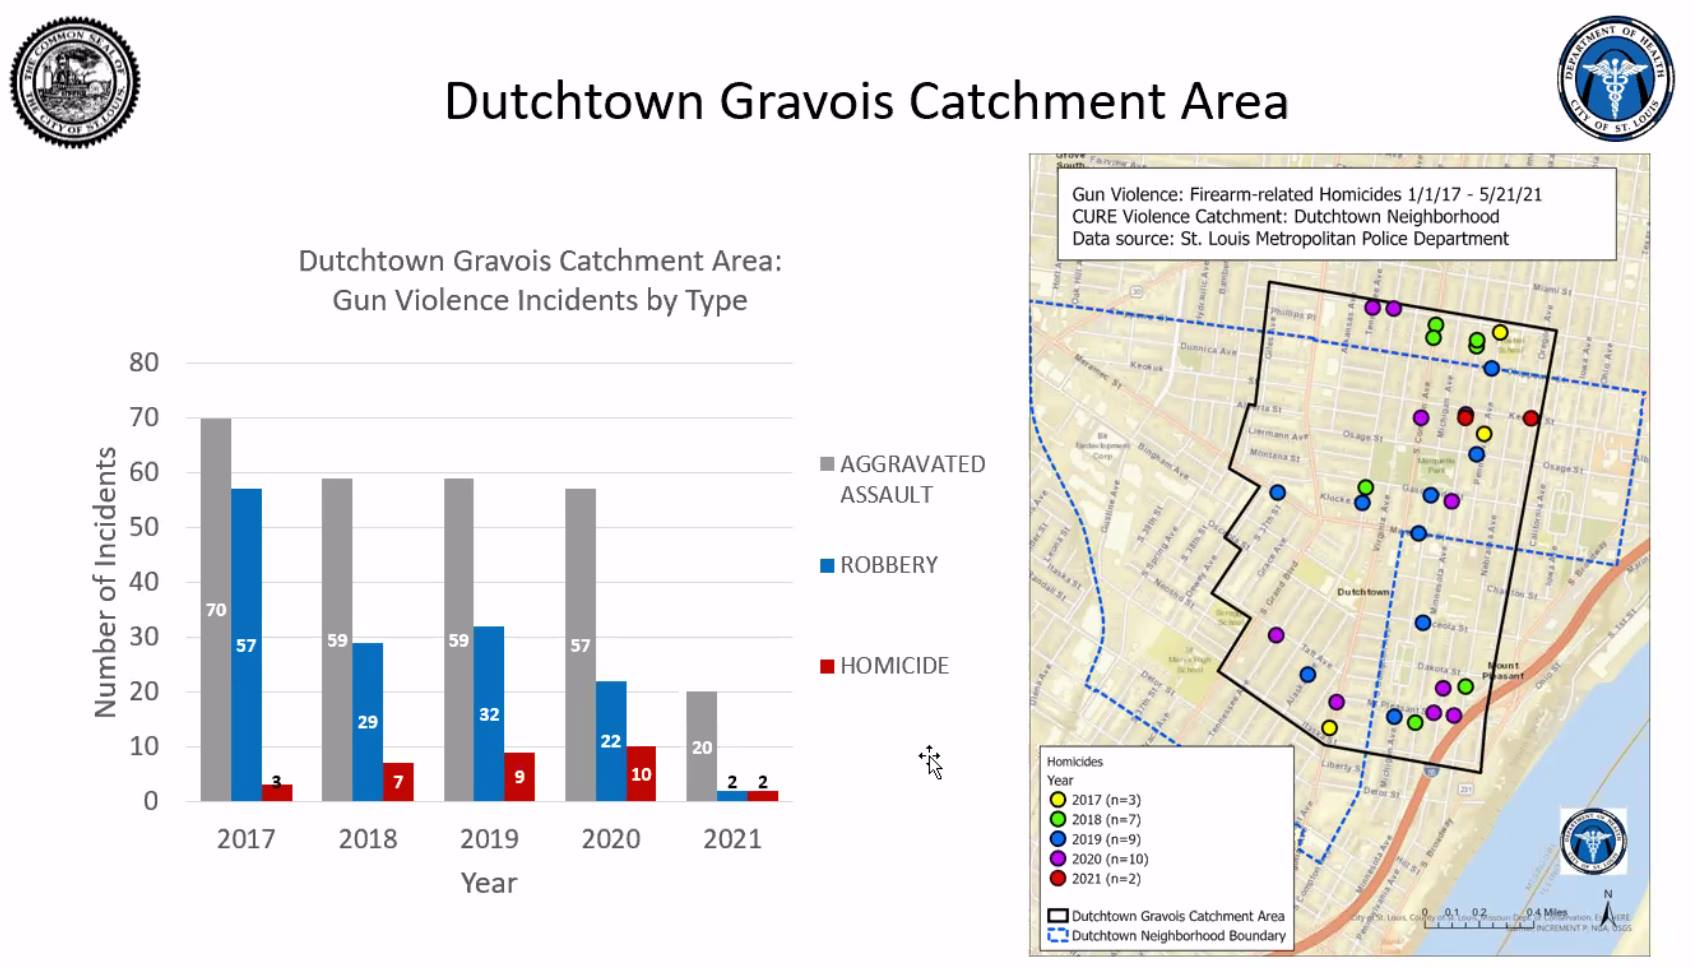 Map of violent crime in Dutchtown year over year showing sharp decreases since implementing the Cure Violence program.